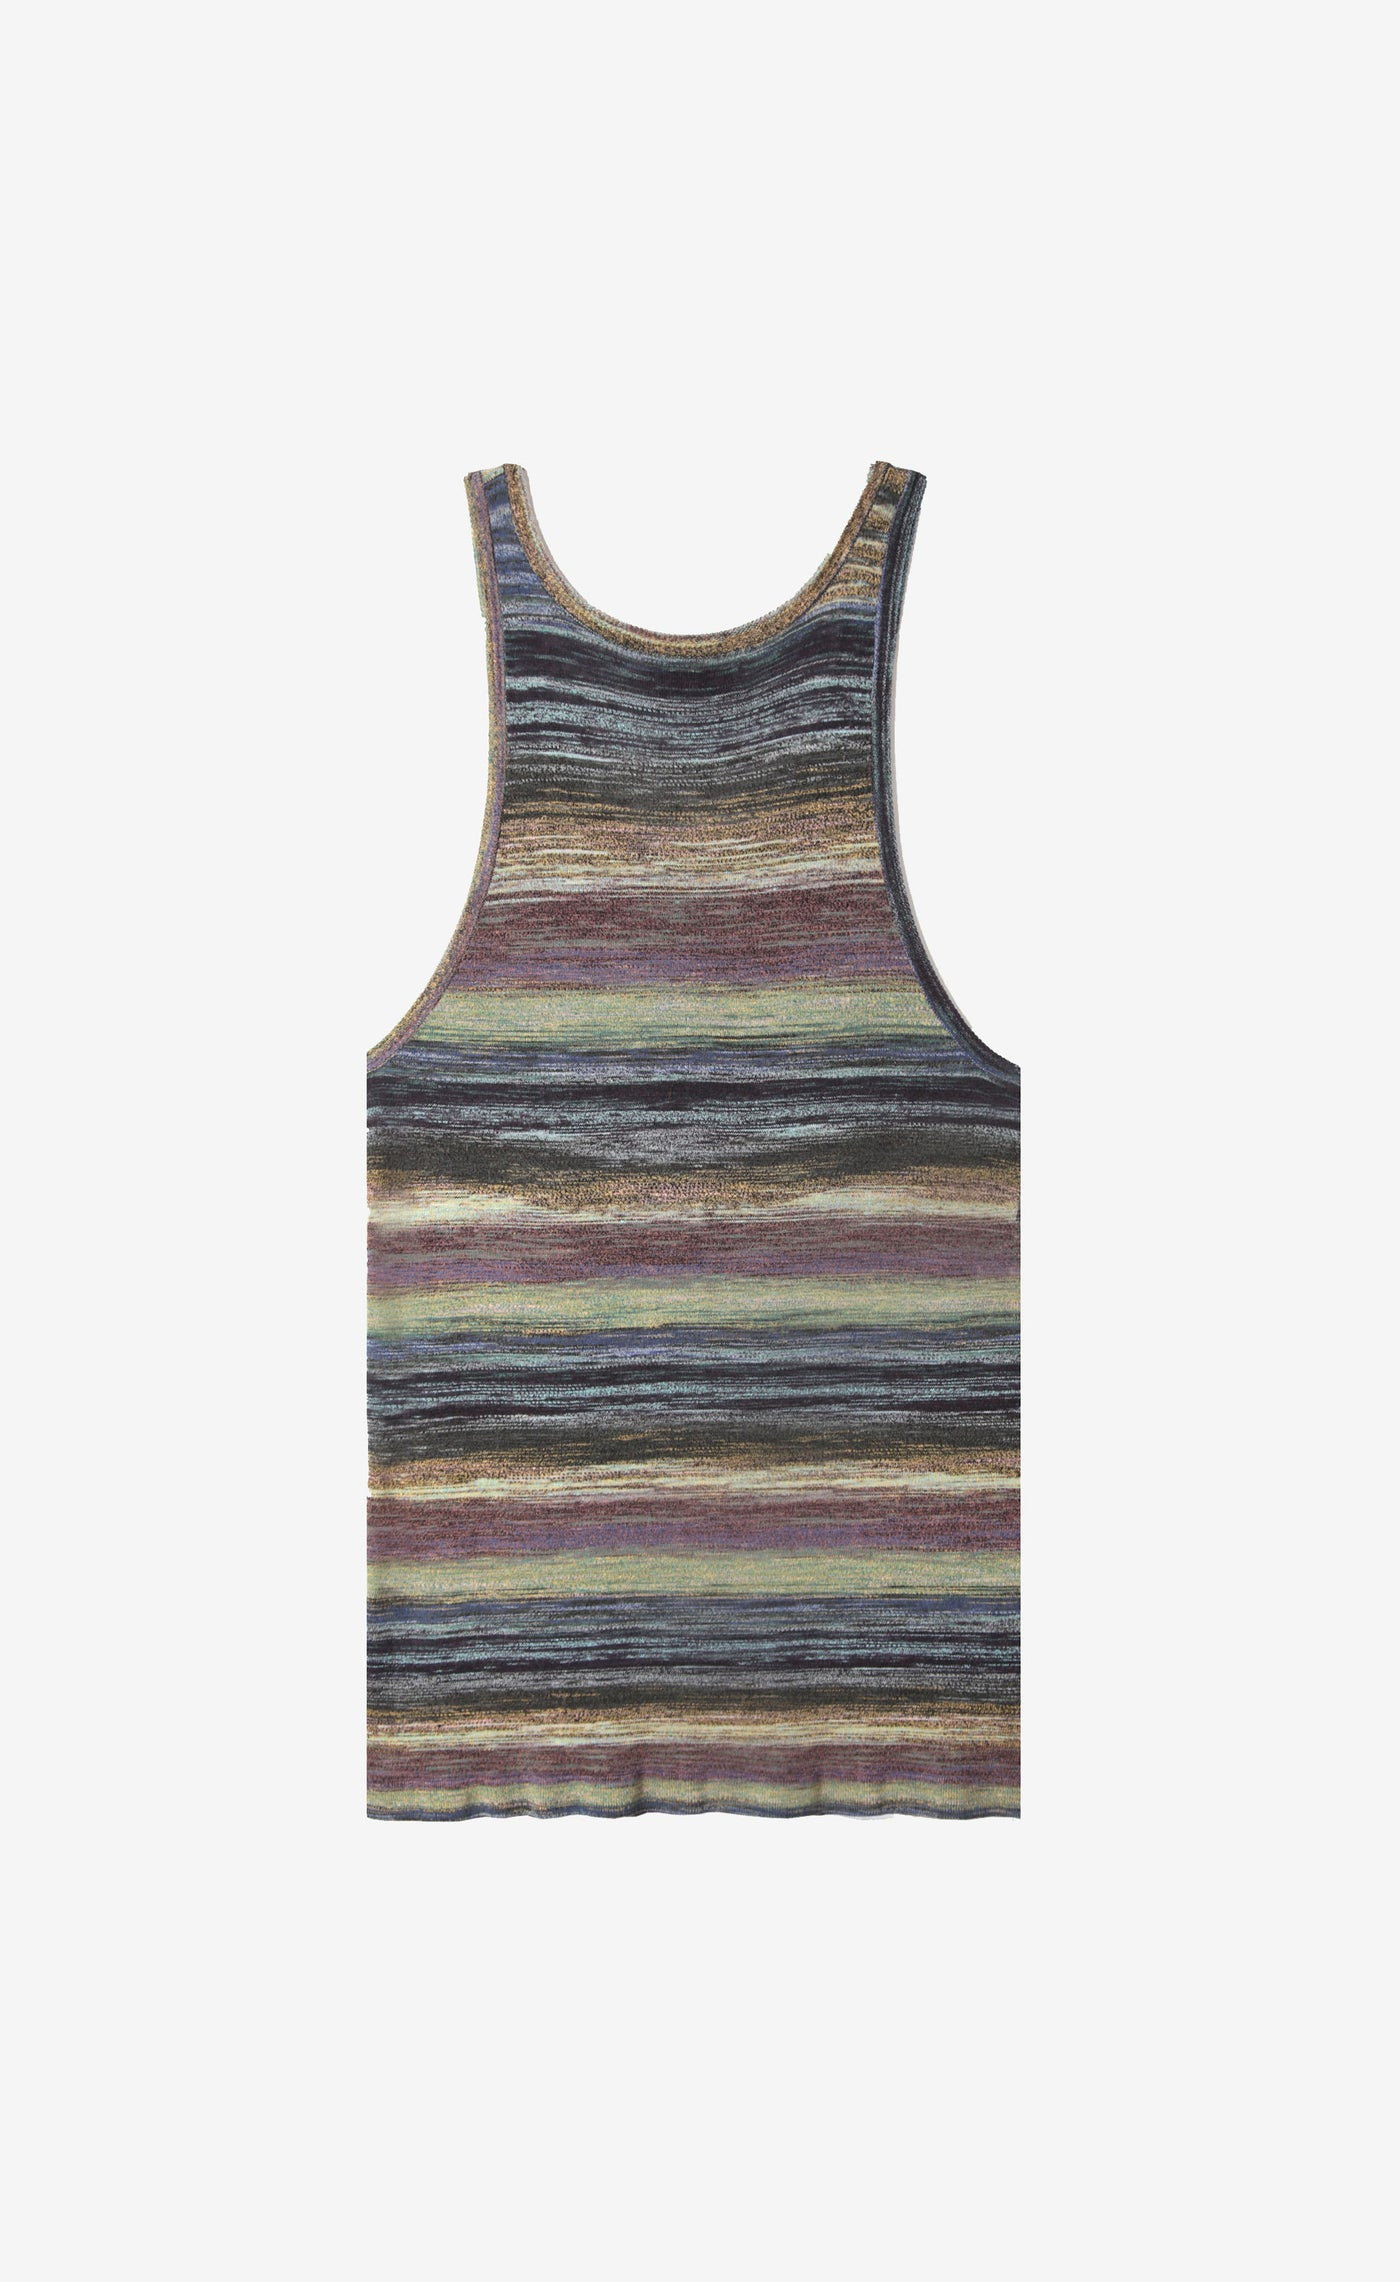 Carl Stripe Tank